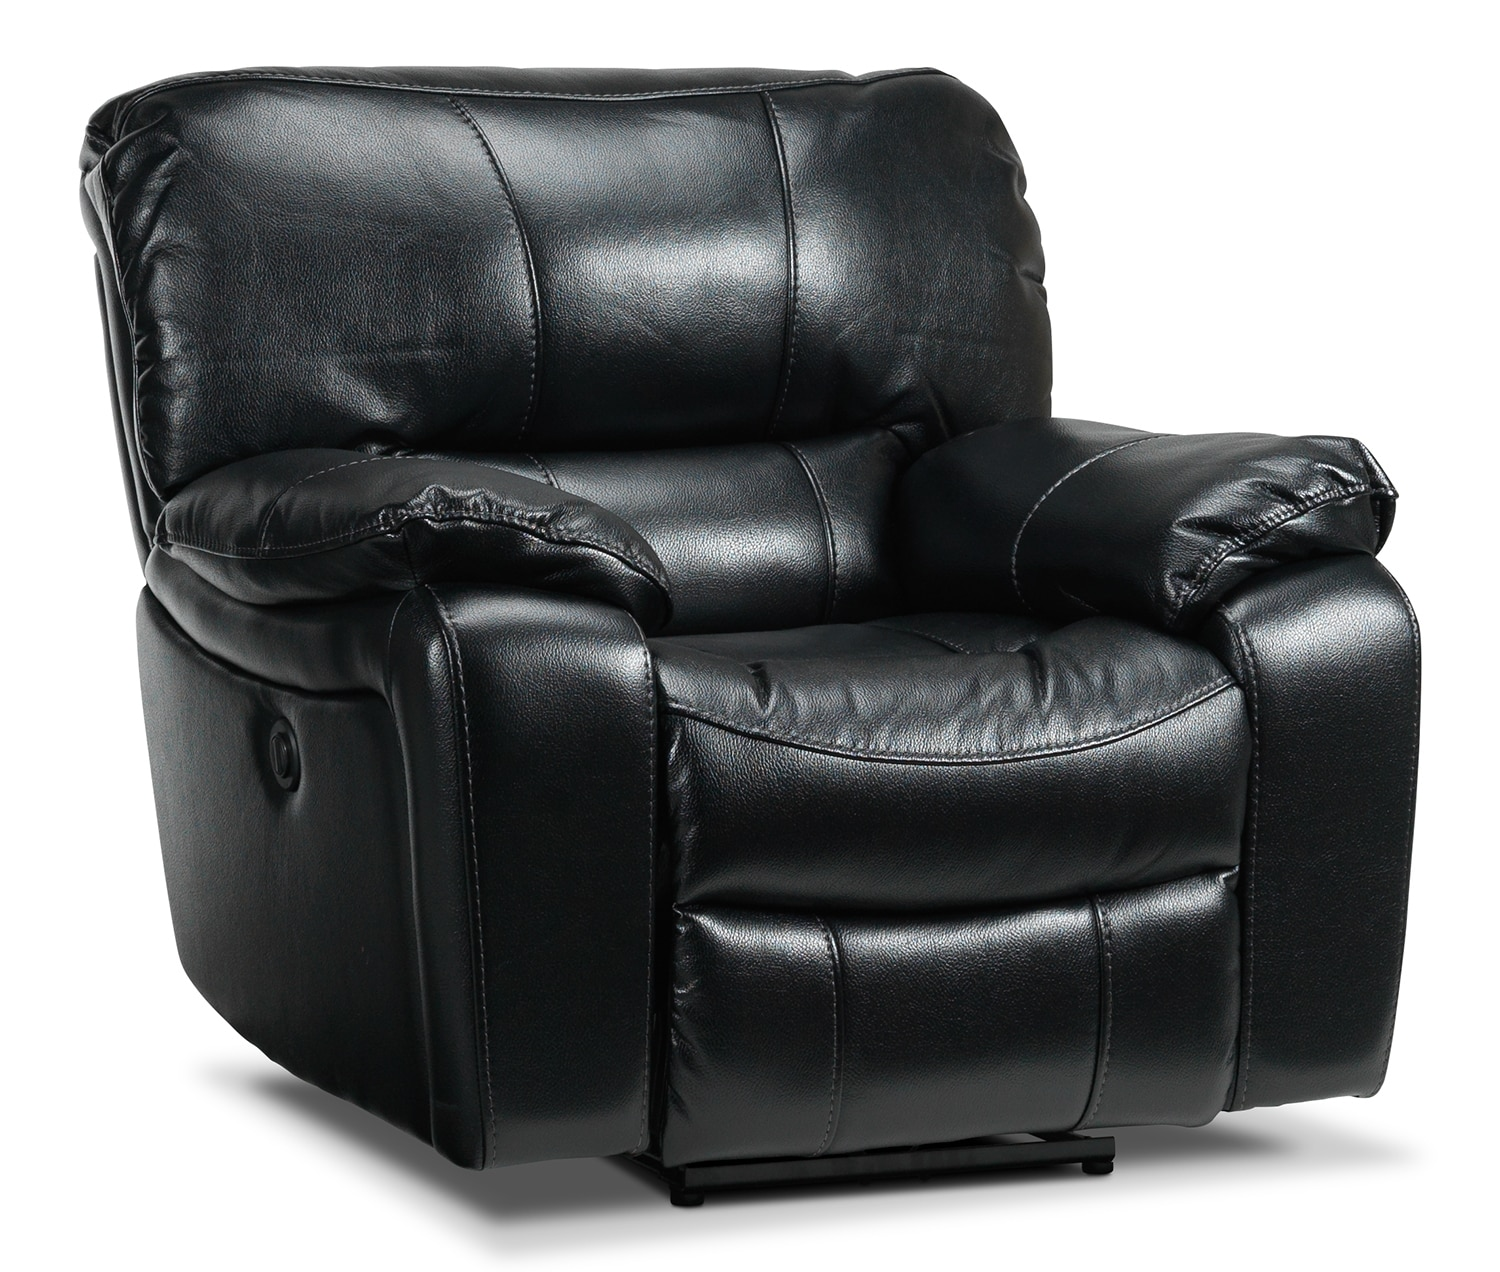 Living Room Furniture - Santorini Power Recliner - Black